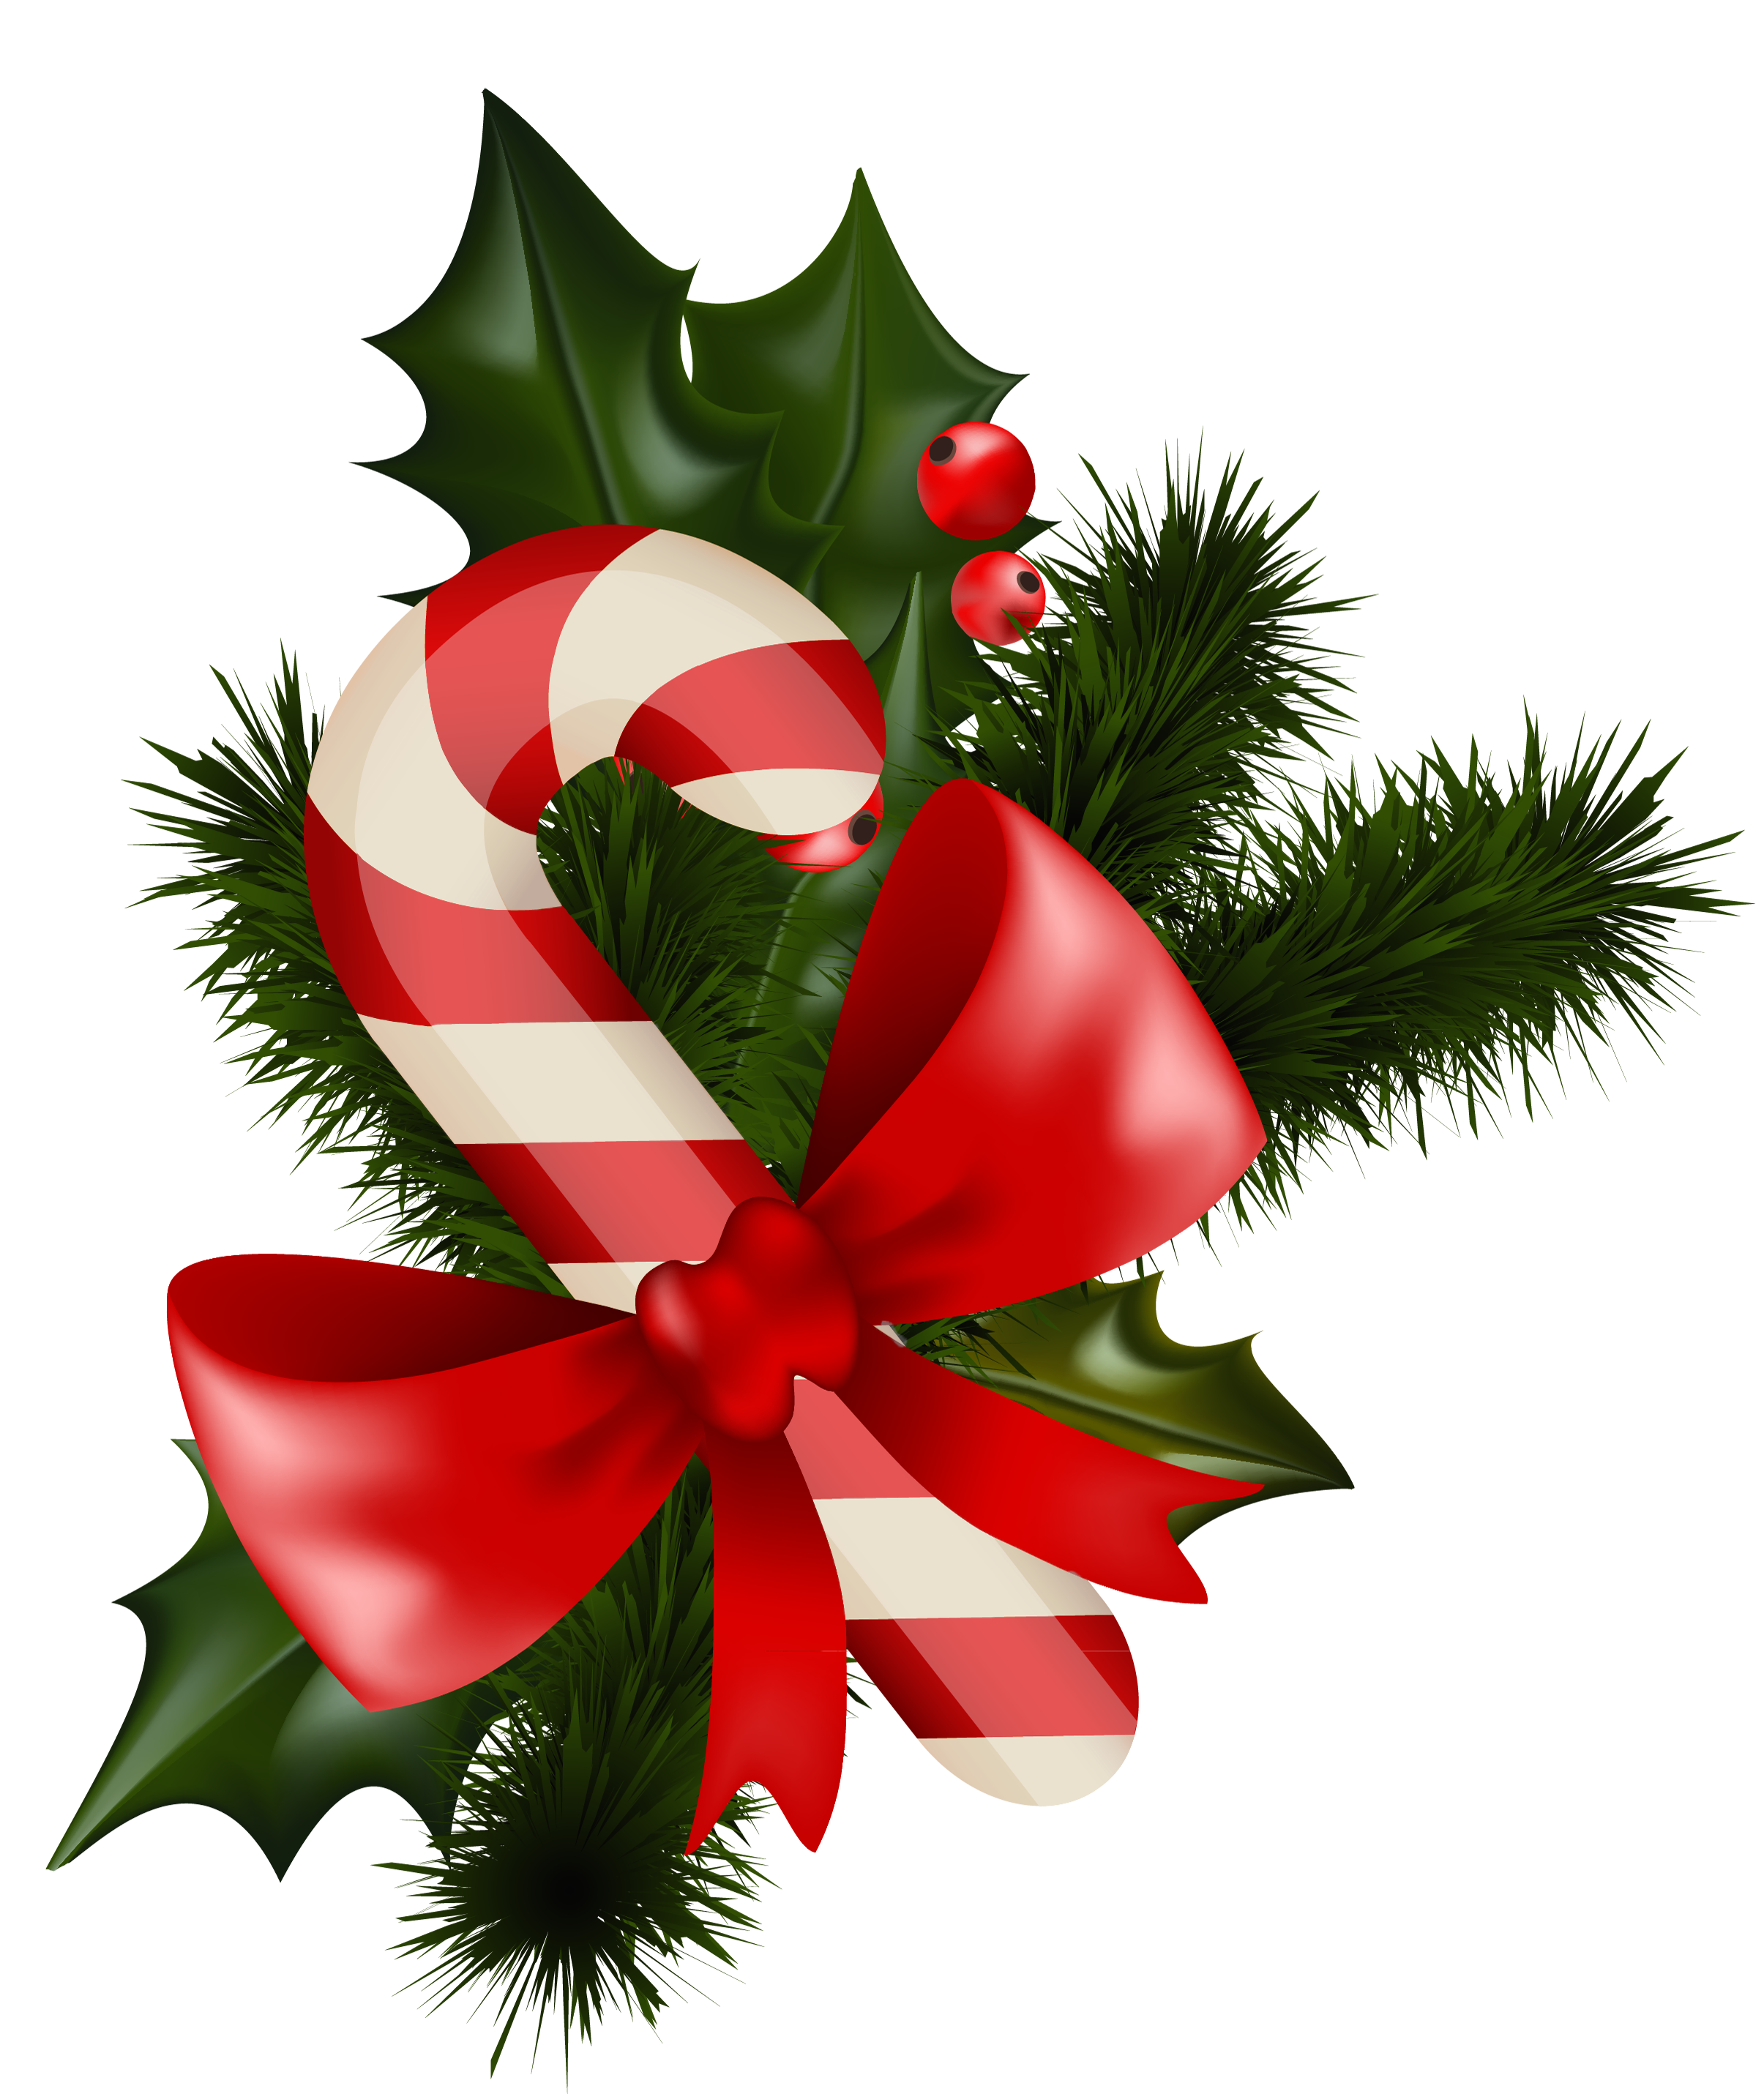 Candy Cane clipart christmas mistletoe Candy Cane free View